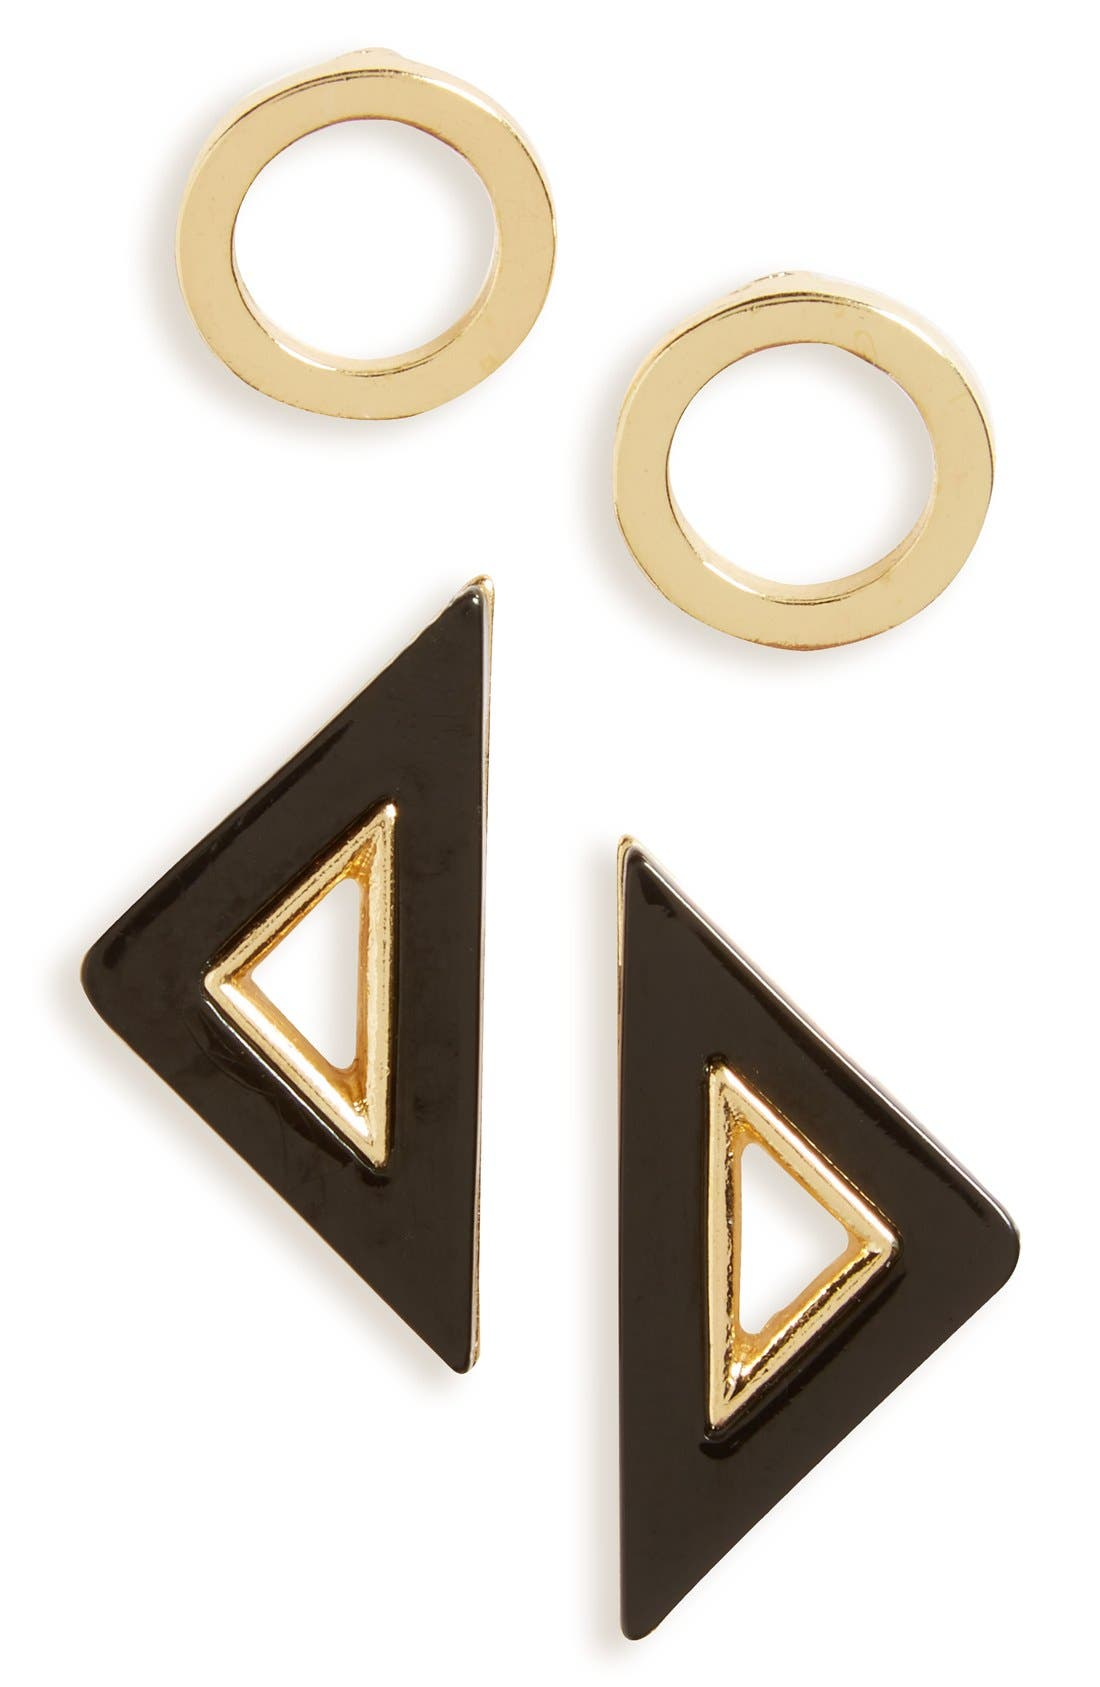 Main Image - Topshop Circle & Triangle Stud Earrings (Set of 2)